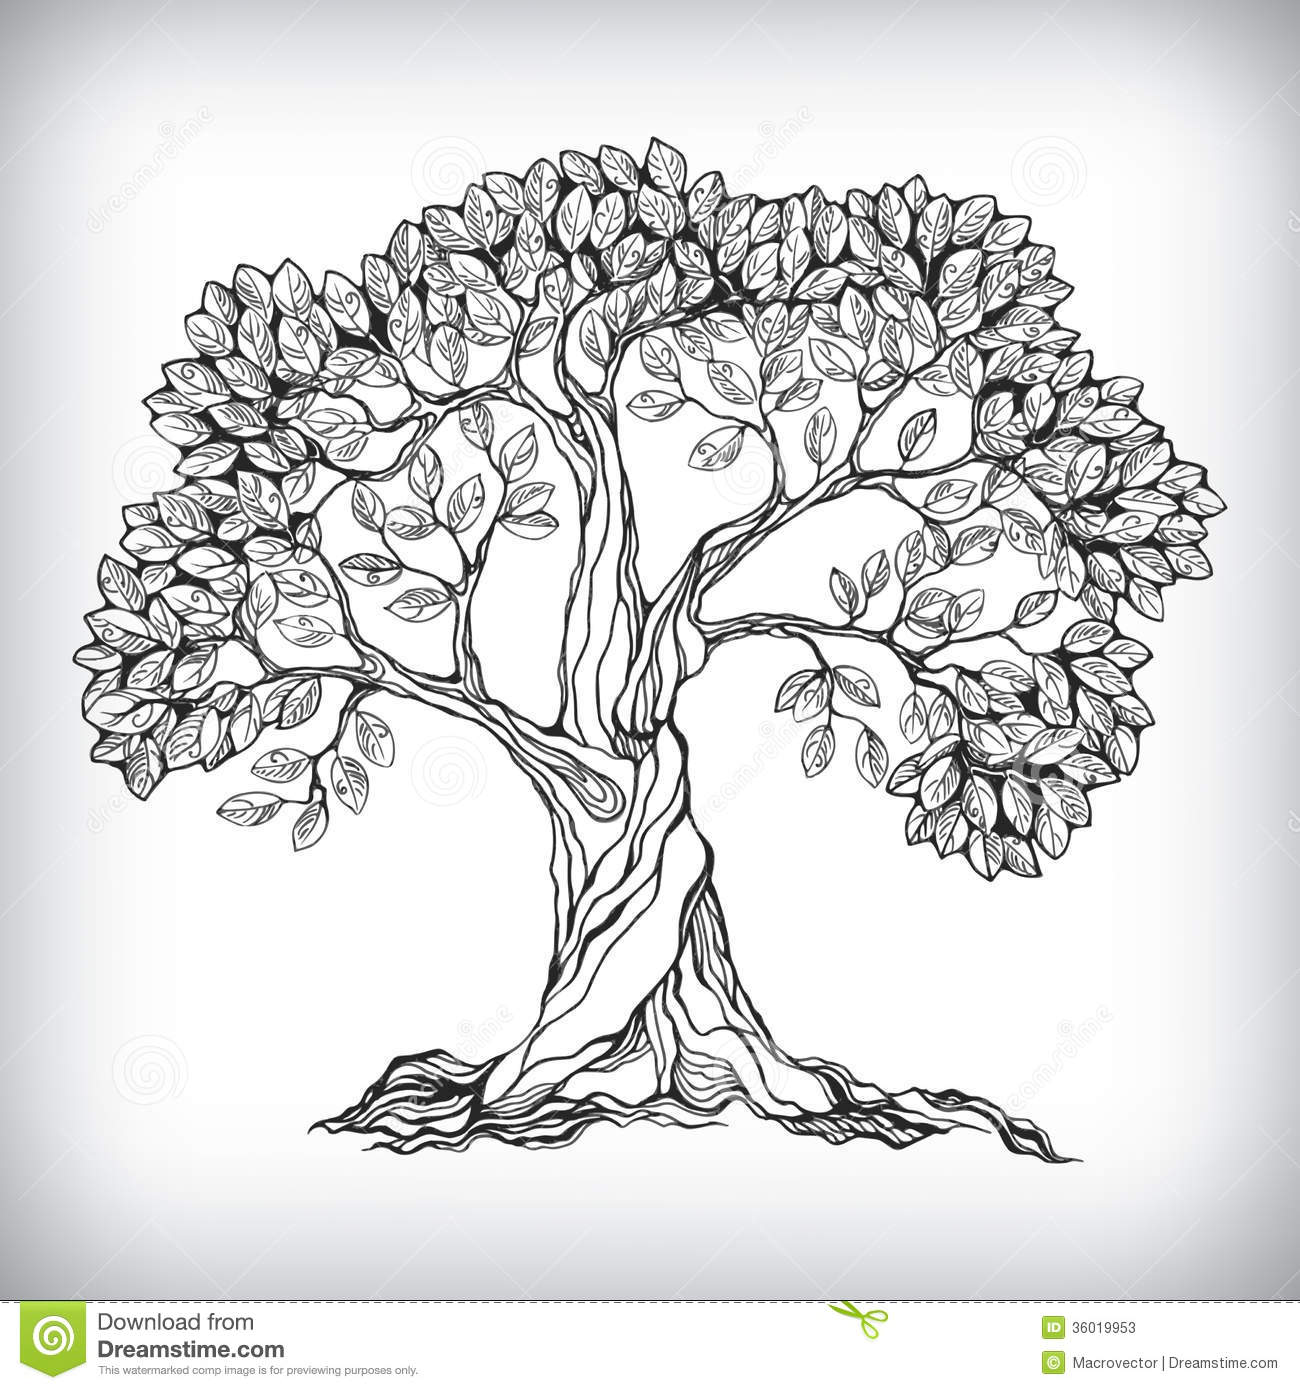 Line Art Of Trees : Hand drawn tree symbol stock vector illustration of black